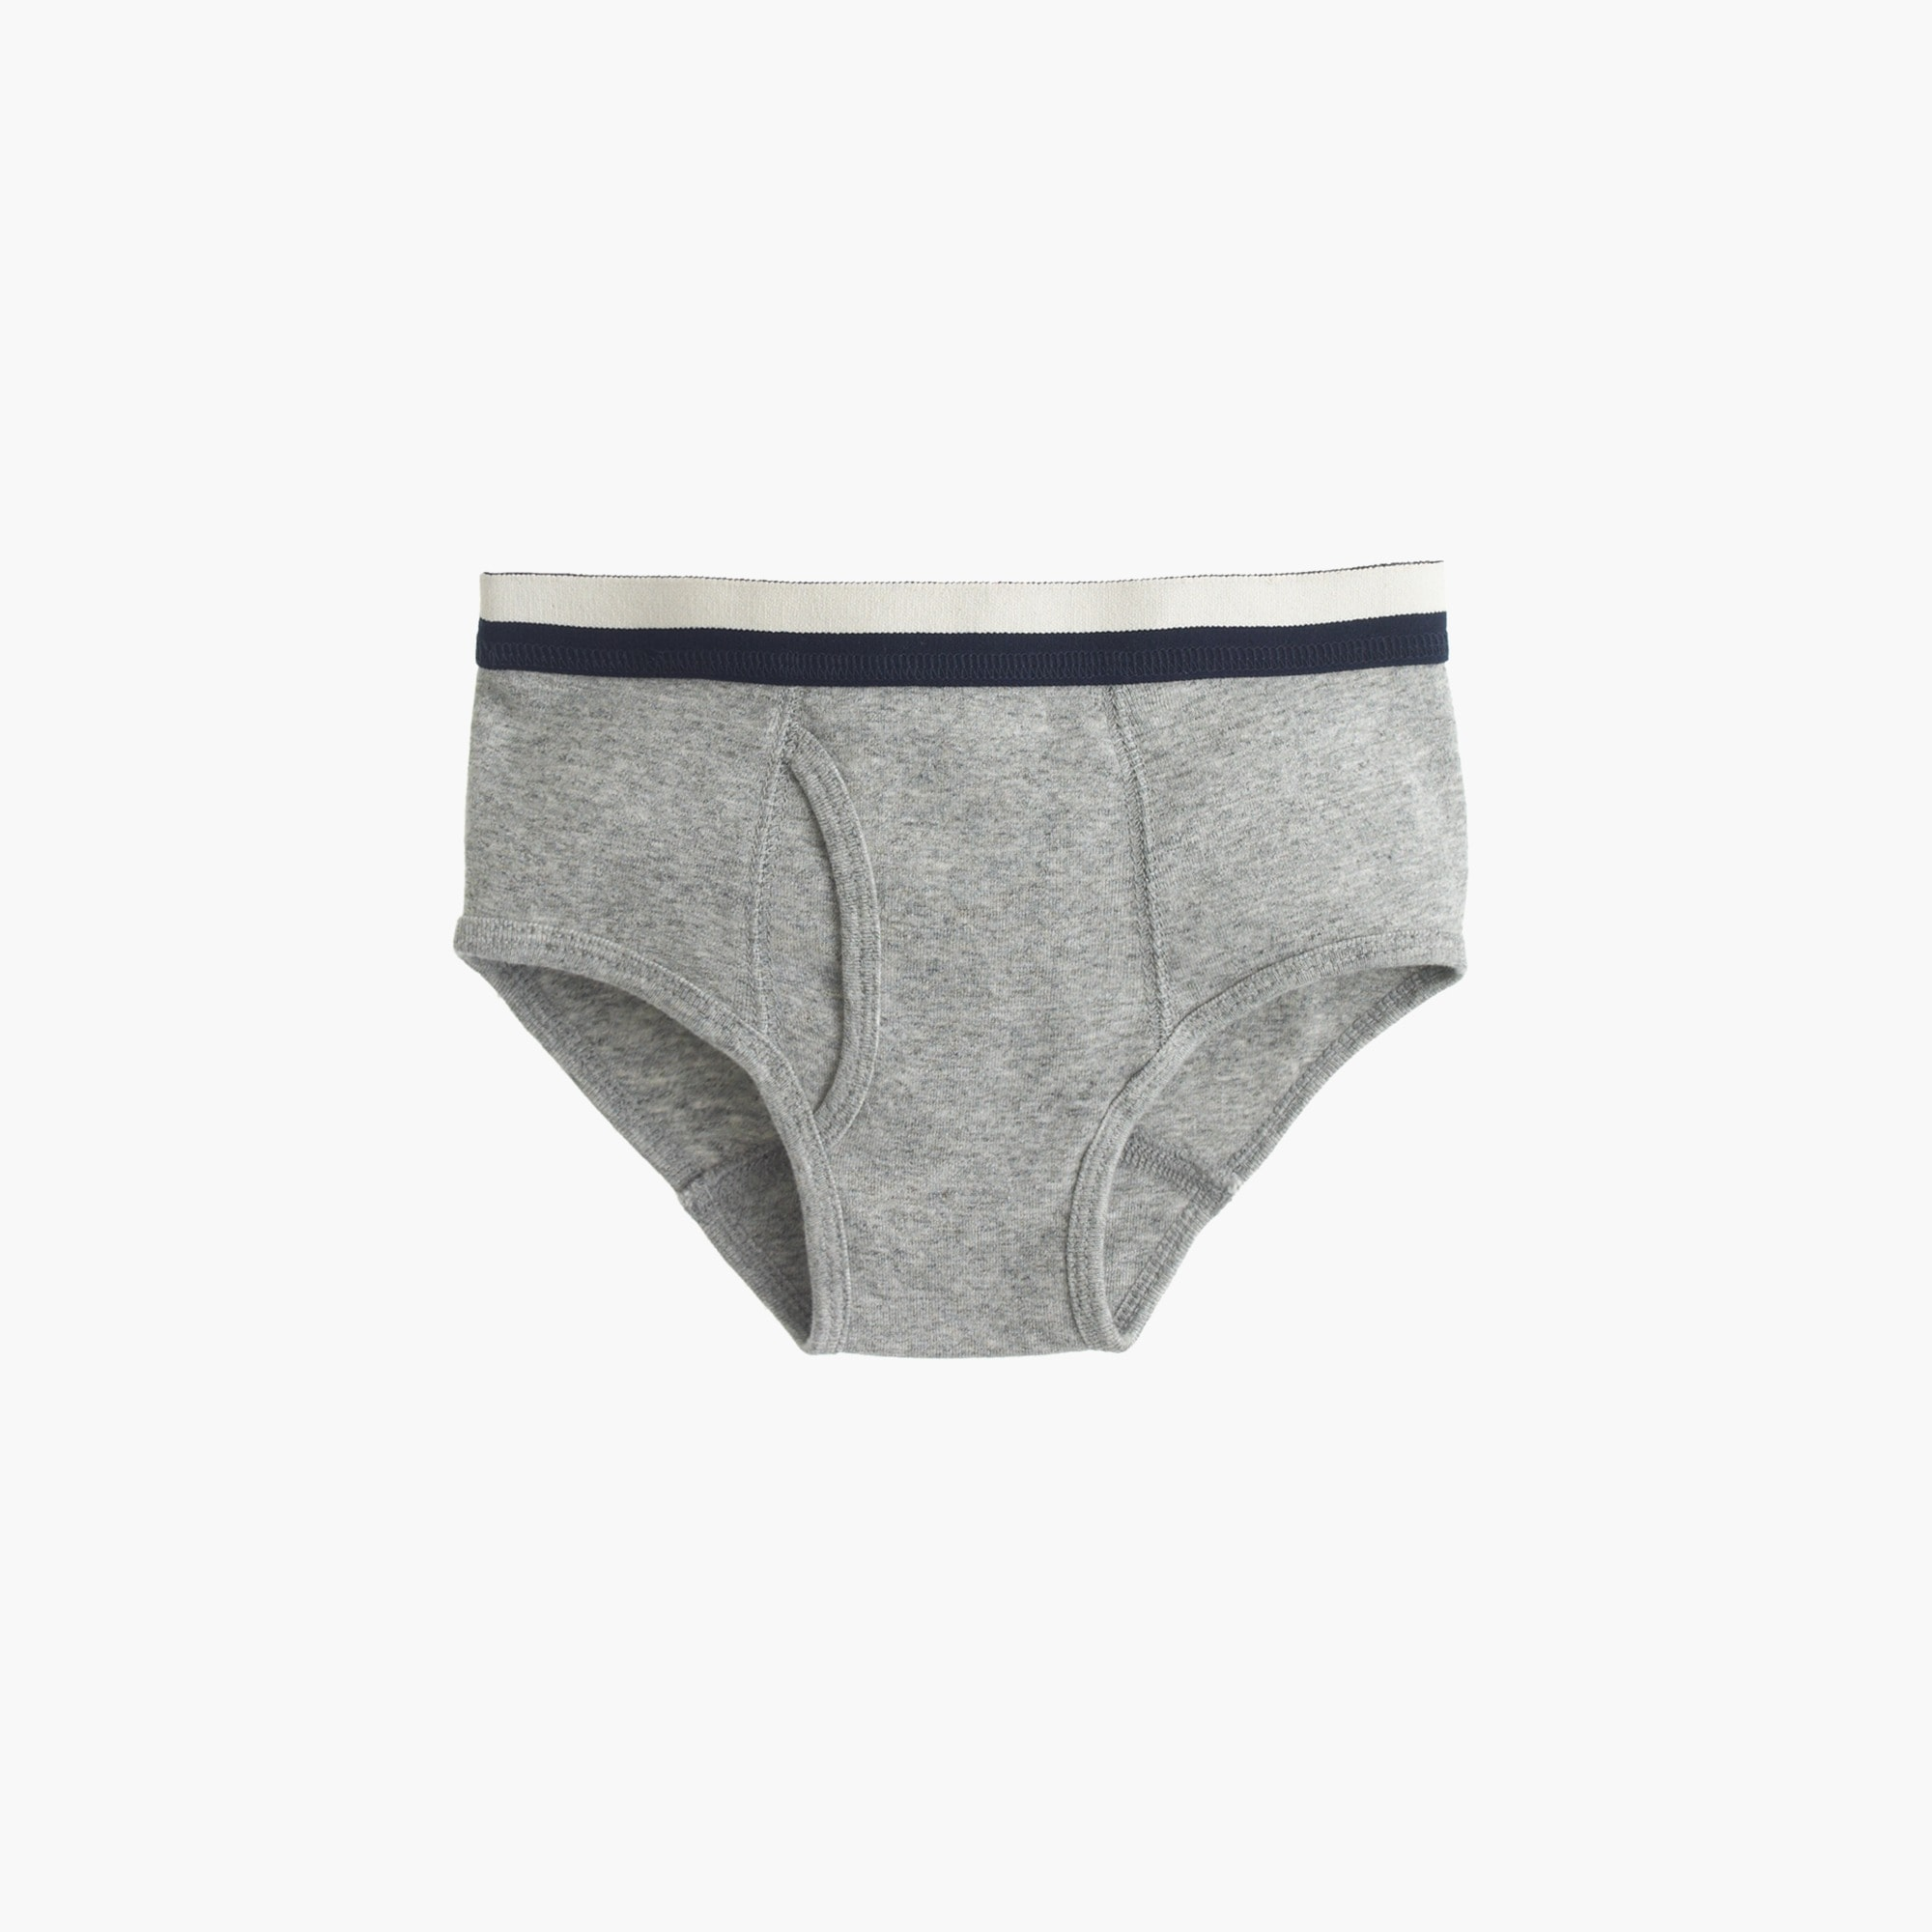 Boys' knit briefs in granite